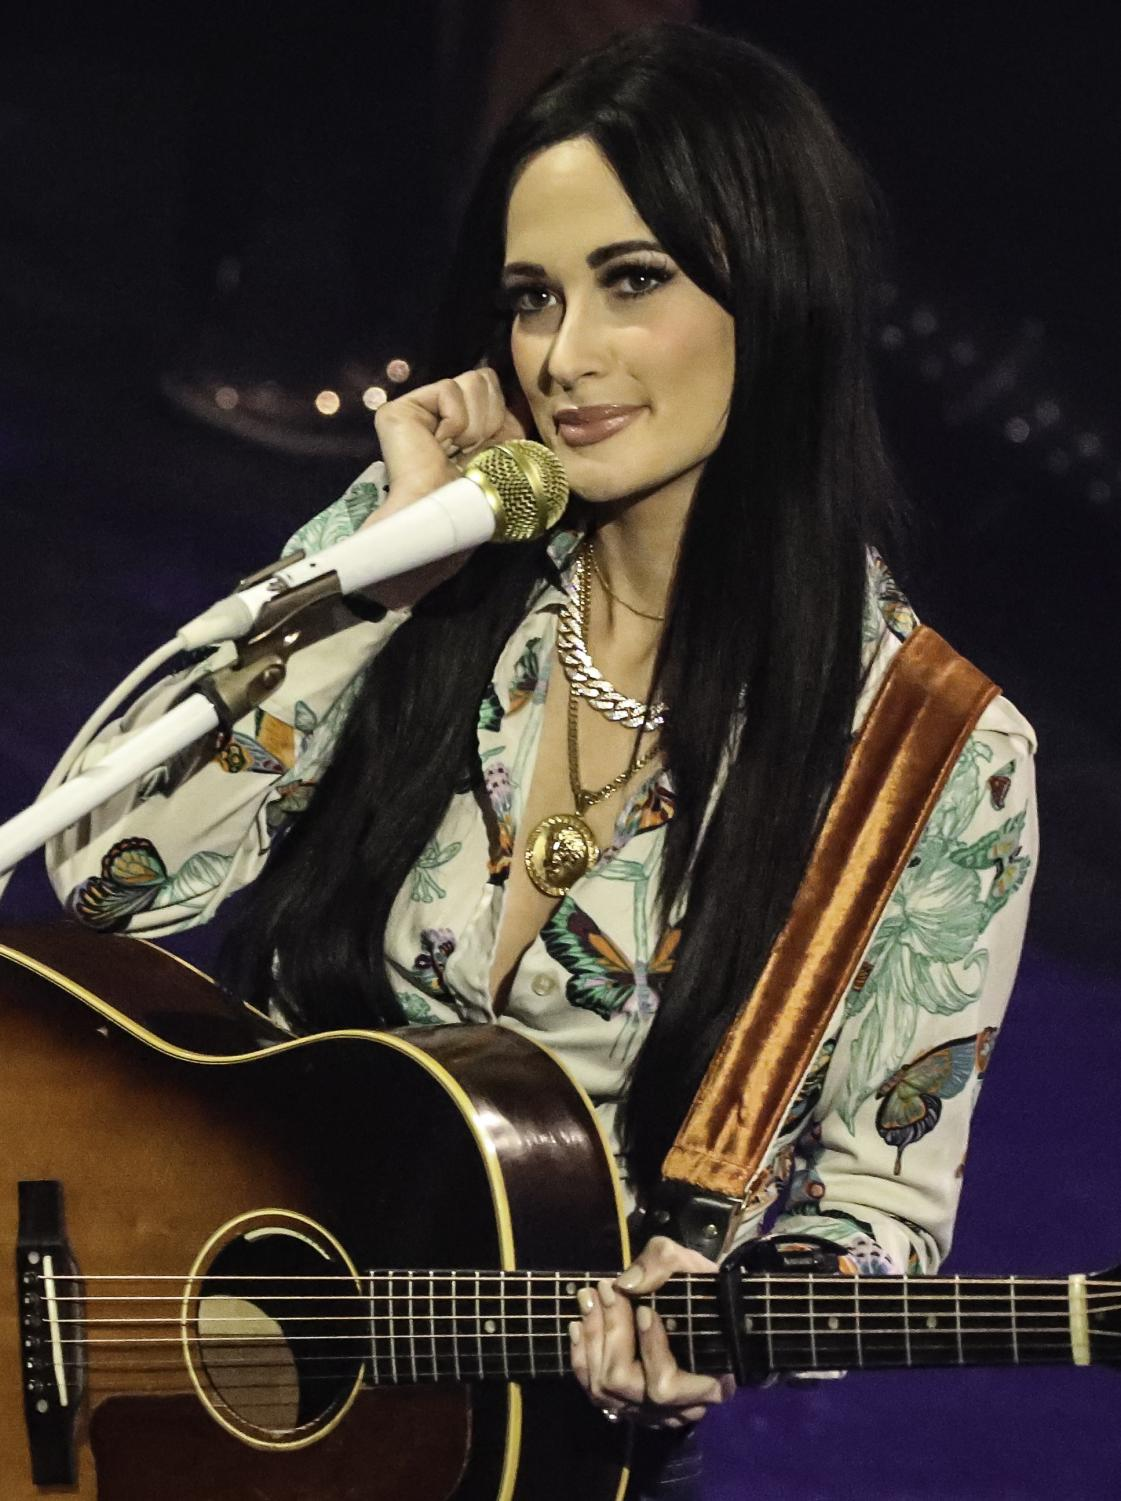 Kacey Musgraves performing a song at one of her many concerts.